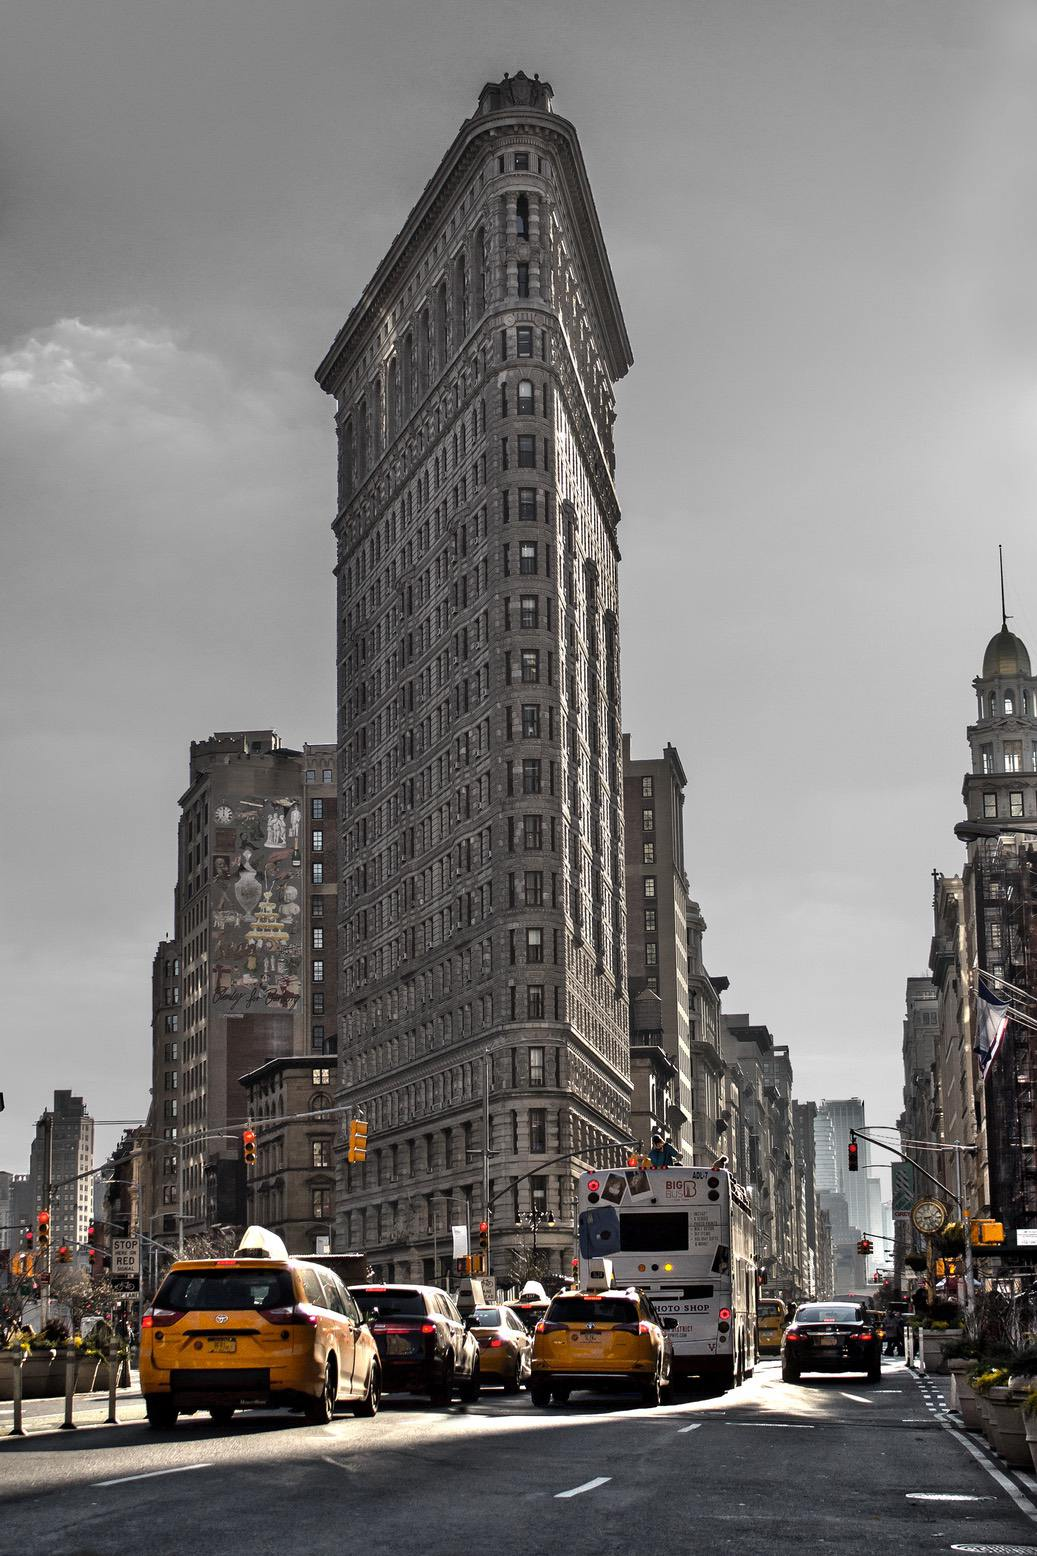 New York City wallpapers for iPhone with Flat Iron building